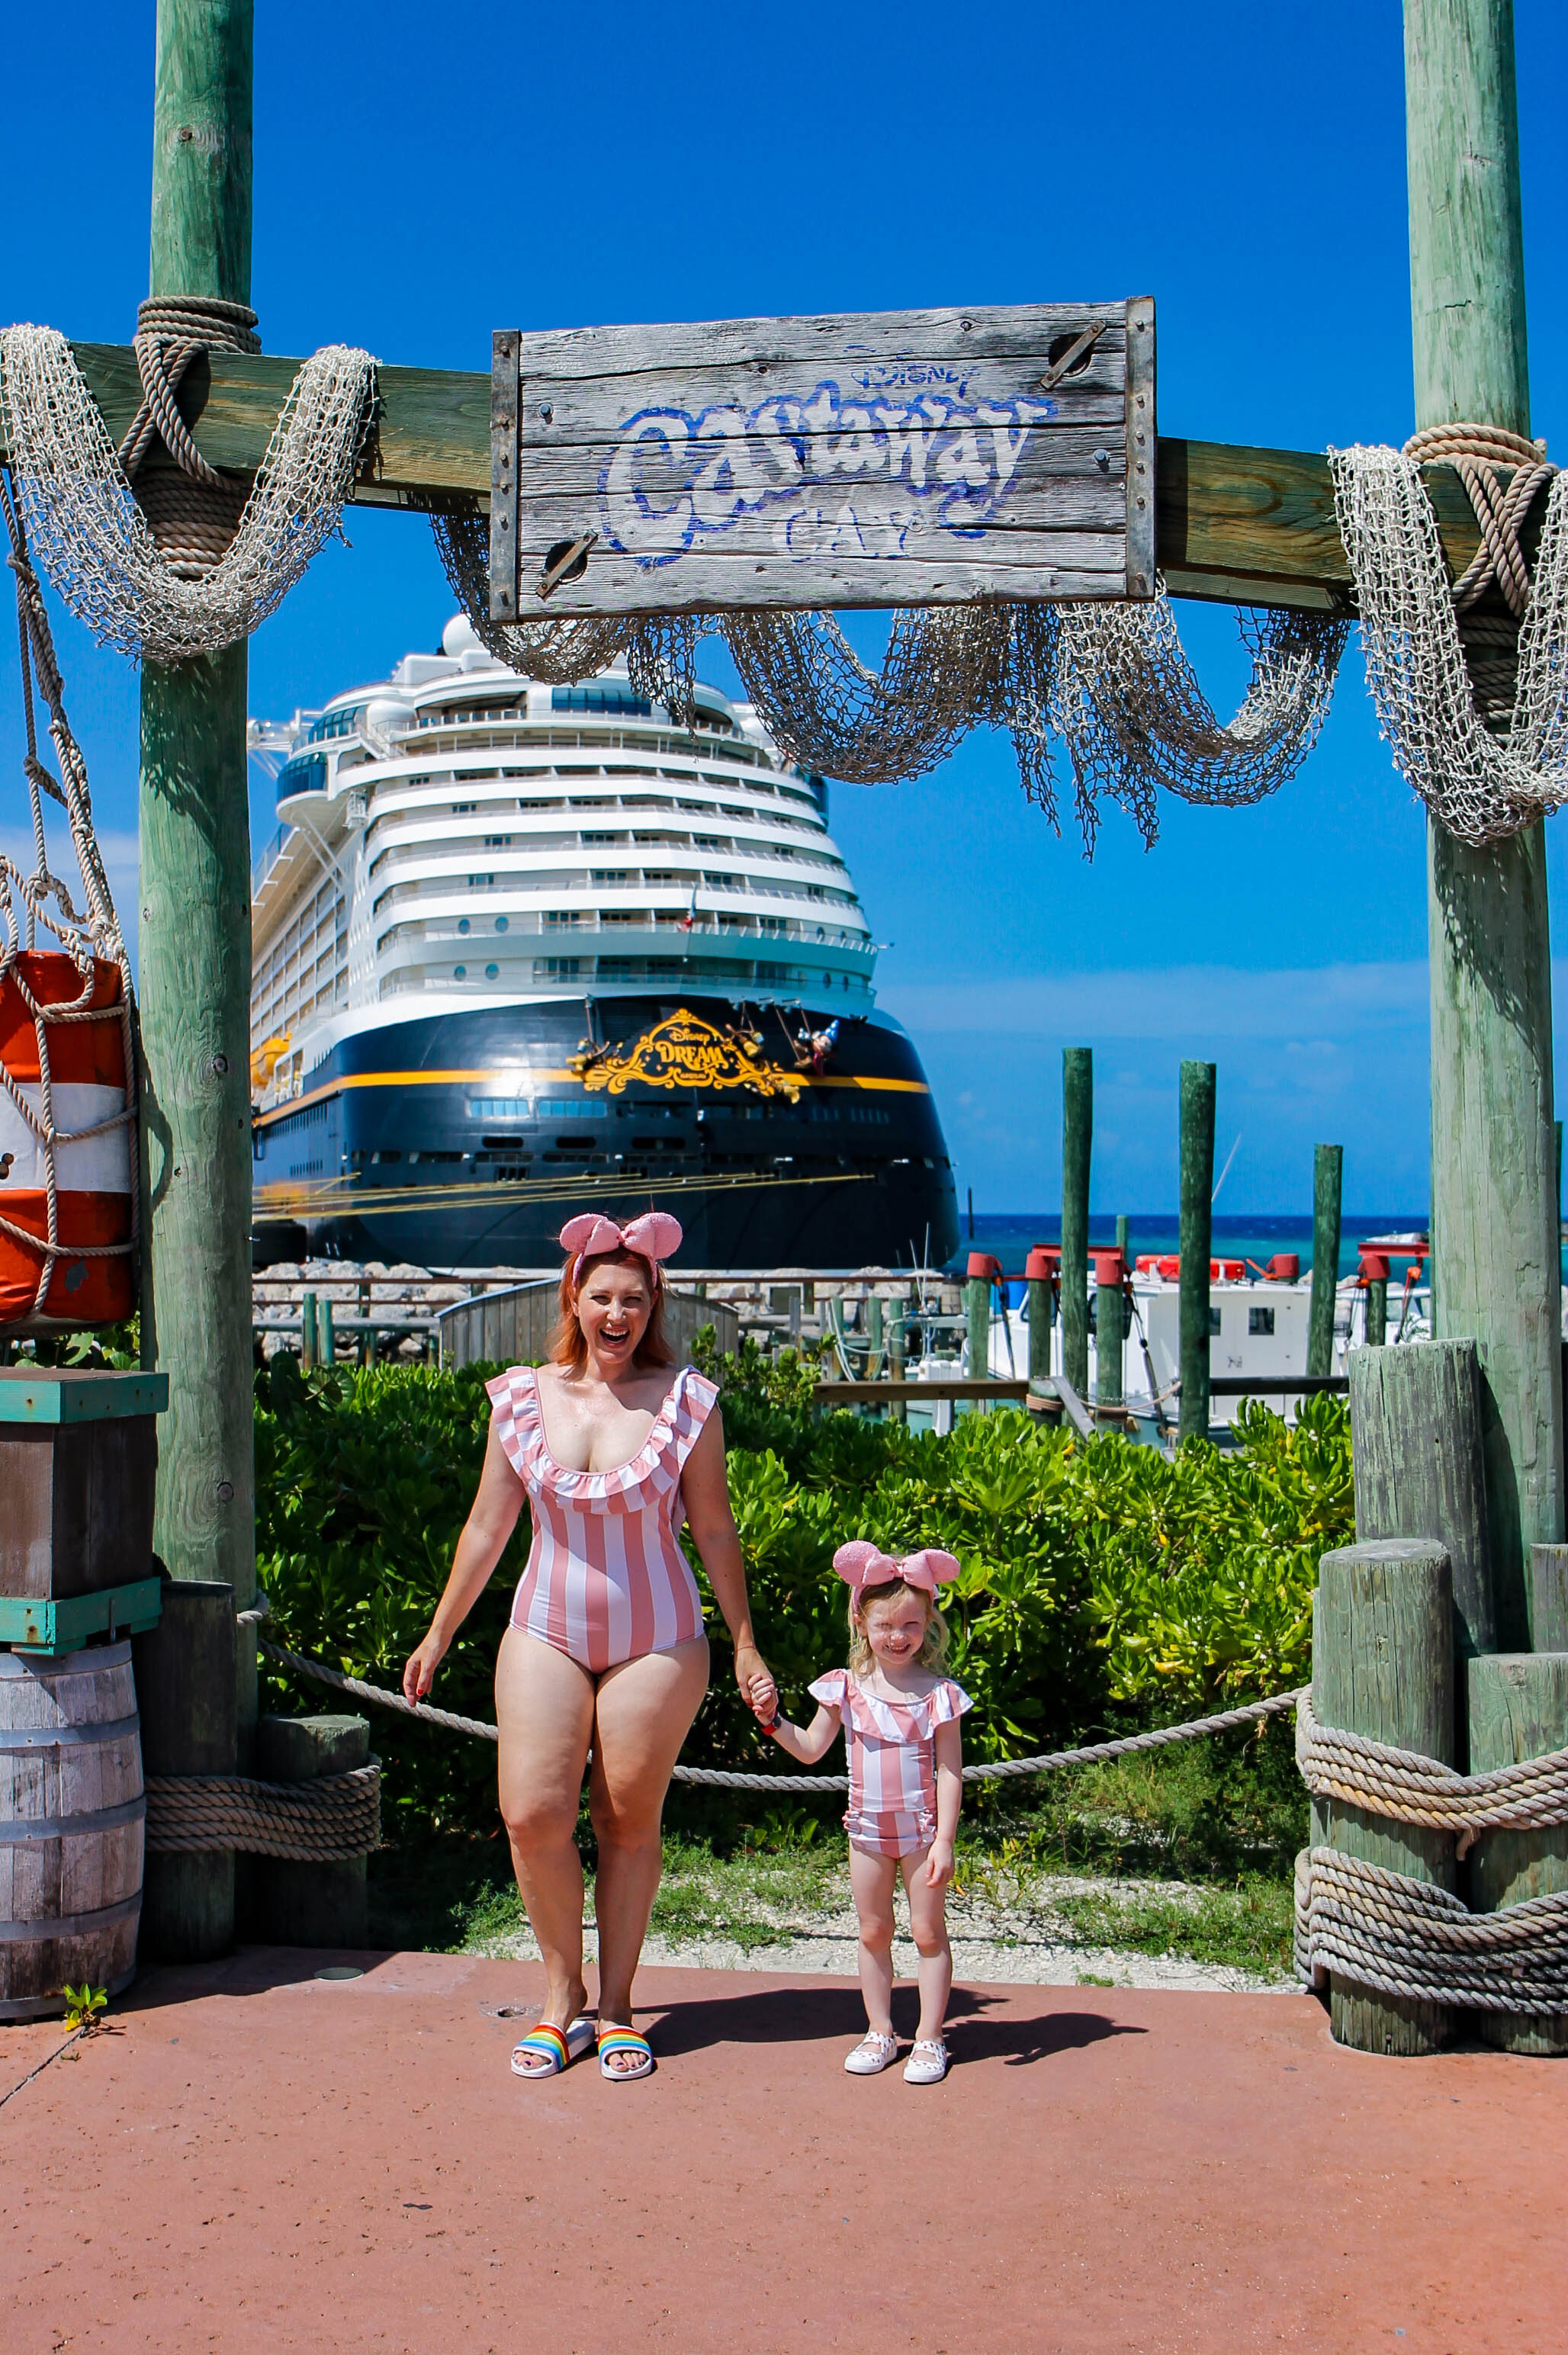 Heading on a Disney Cruise Line vacation to the Bahamas? This list of Castaway Cay Pictures will tell you where to shoot the best images of your family on Disney's magical private island!